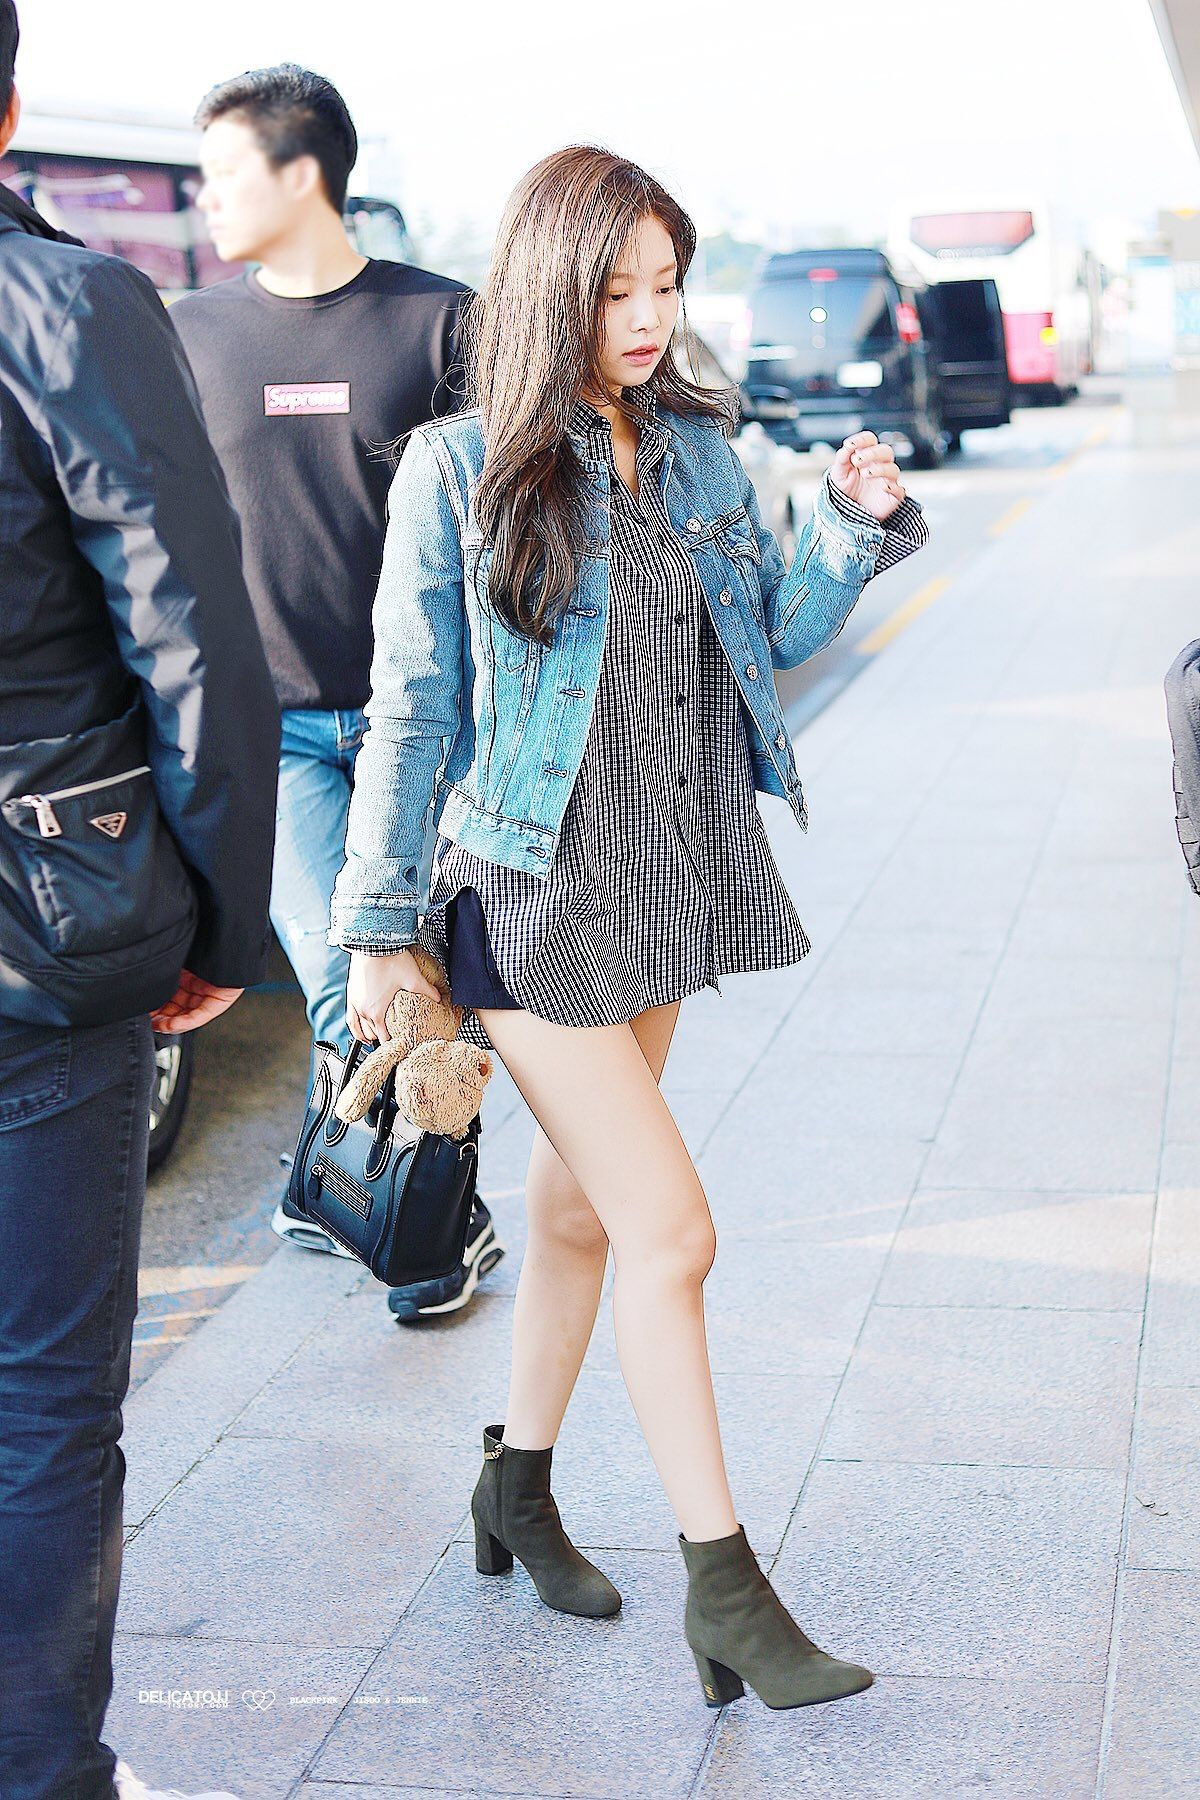 Blackpink Jenny Airport Fashion Kpop | Airport Fashion | Pinterest | Airport fashion Blackpink ...